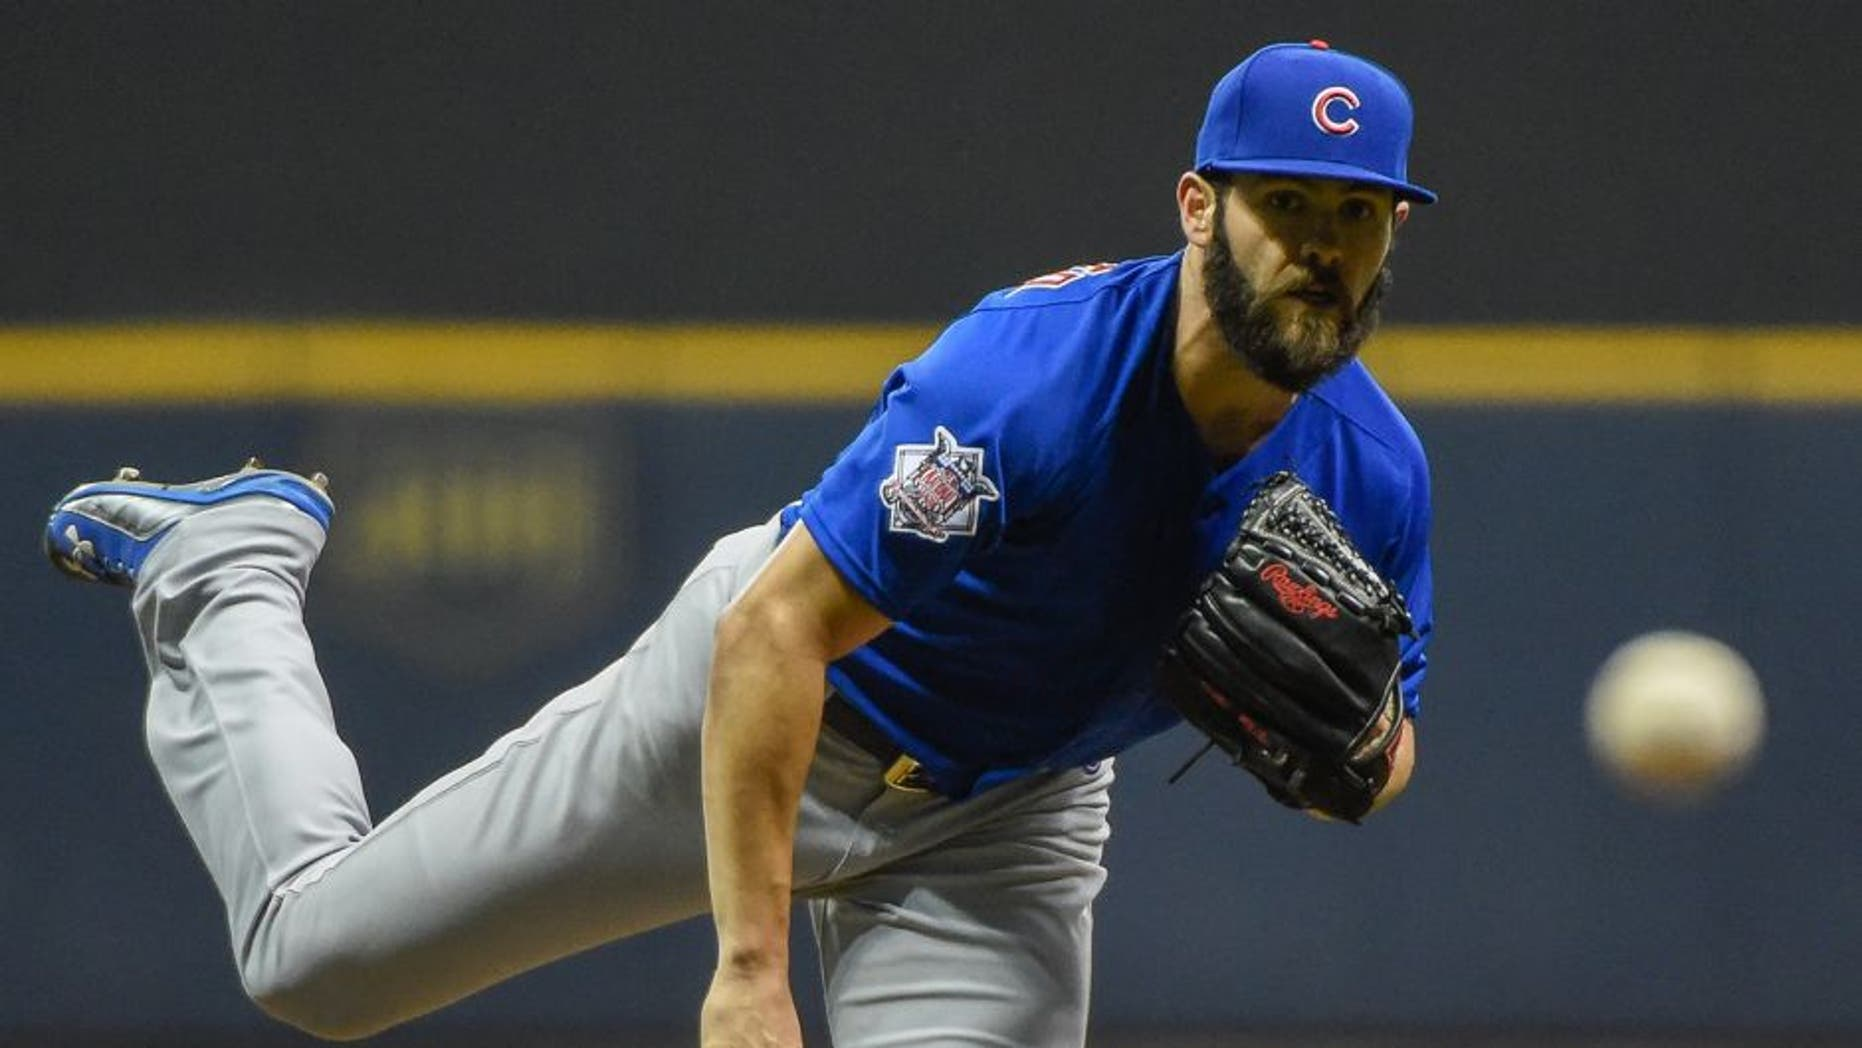 Oct 2, 2015; Milwaukee, WI, USA; Chicago Cubs pitcher Jake Arrieta (49) pitches in the first inning against the Milwaukee Brewers at Miller Park. Mandatory Credit: Benny Sieu-USA TODAY Sports